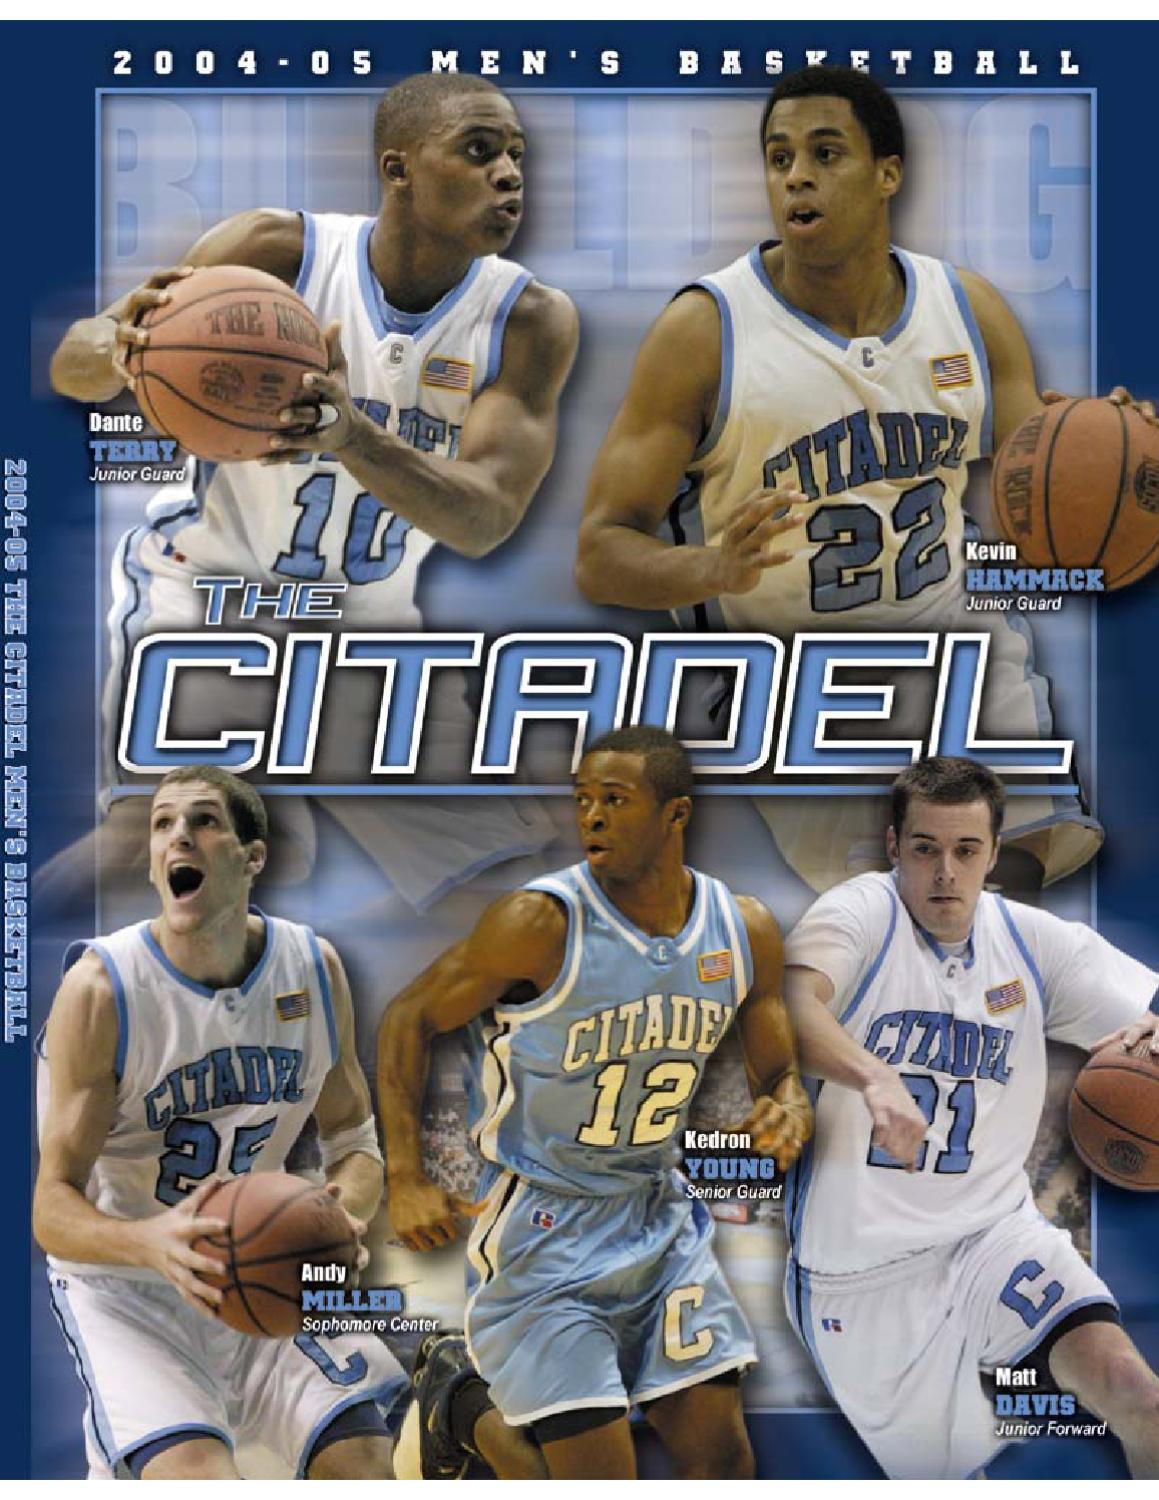 0bfbfb137 2004-05 The Citadel Basketball Media Guide by Jon Cole - issuu